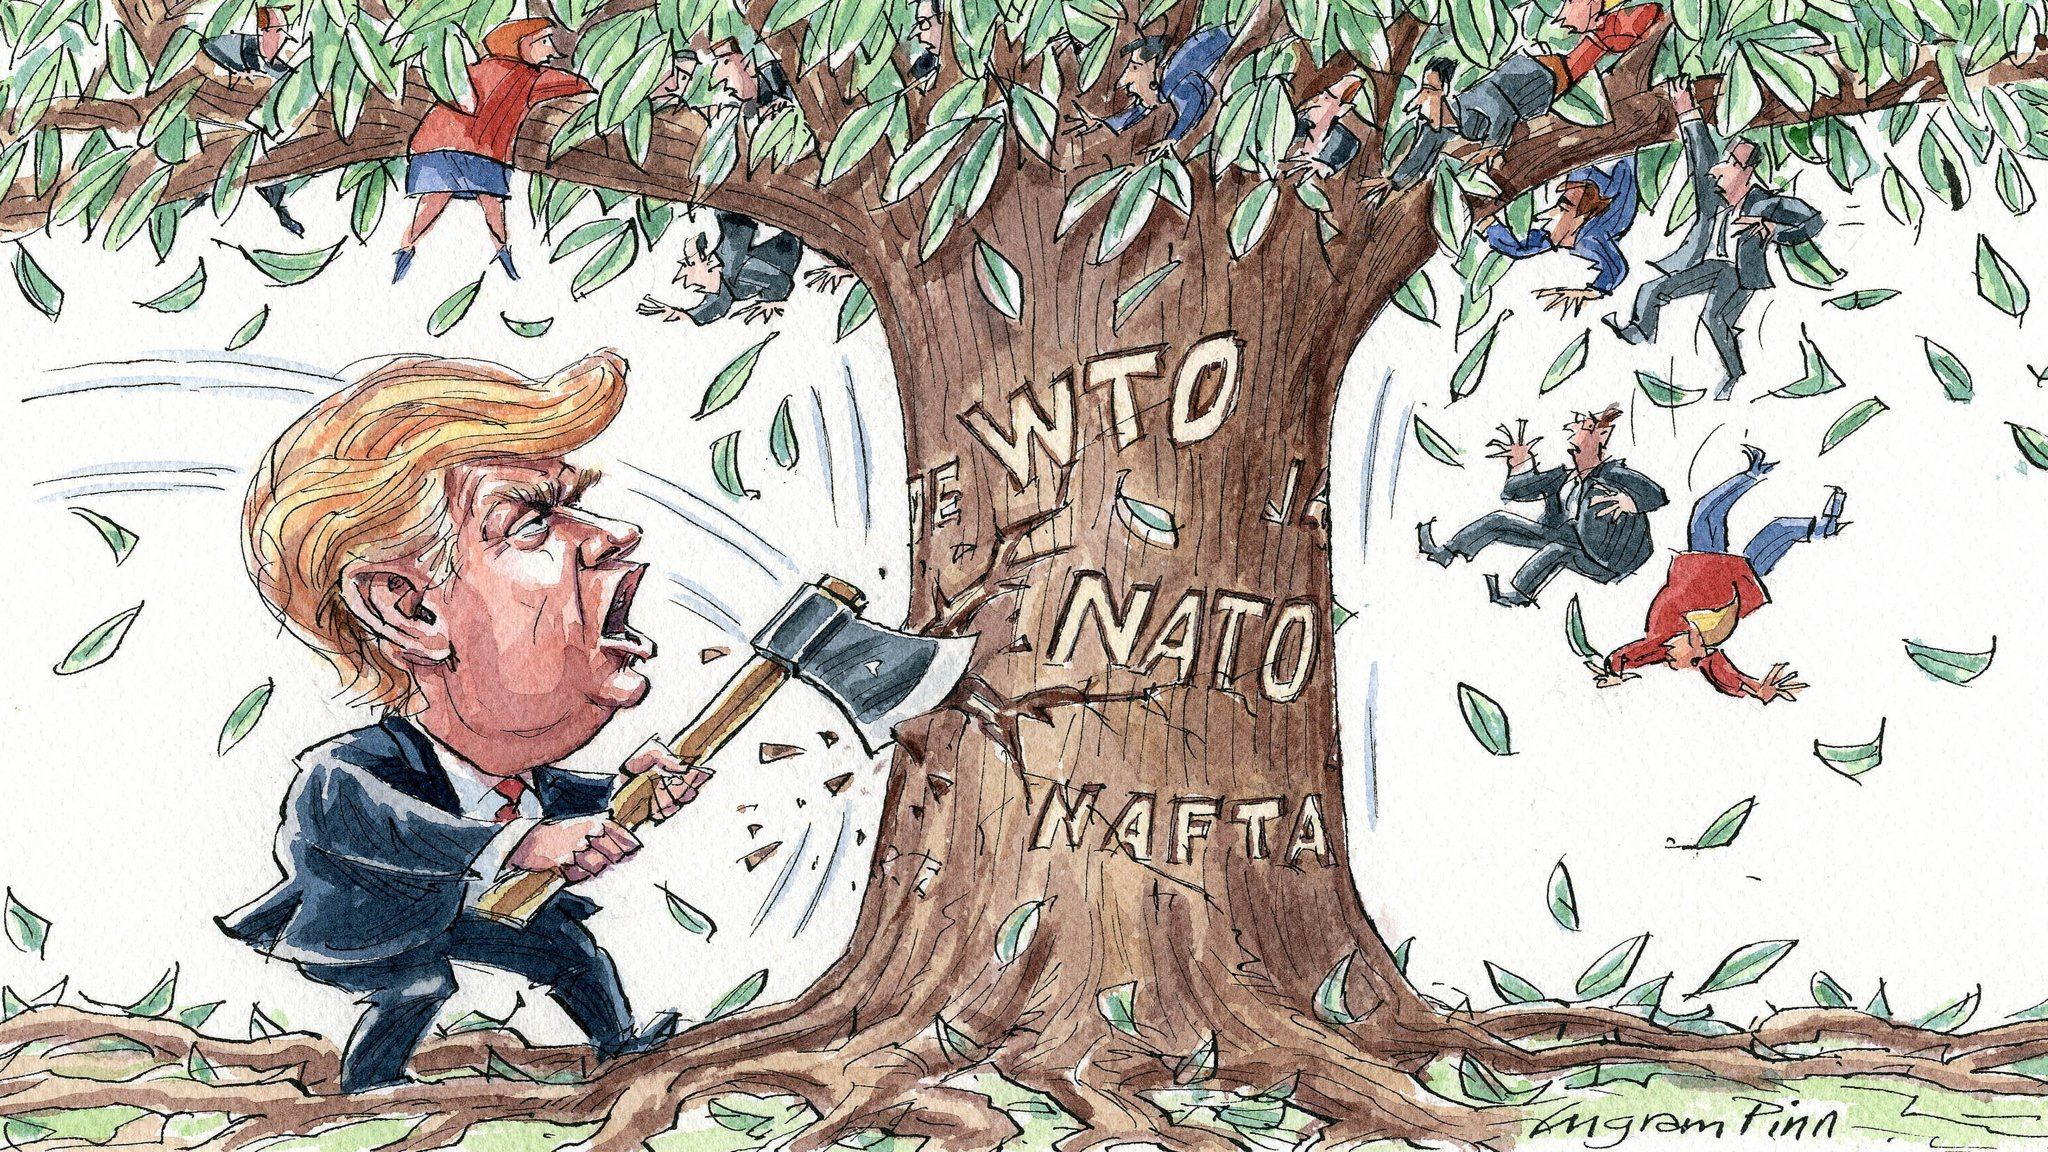 Trump, Security and Trade